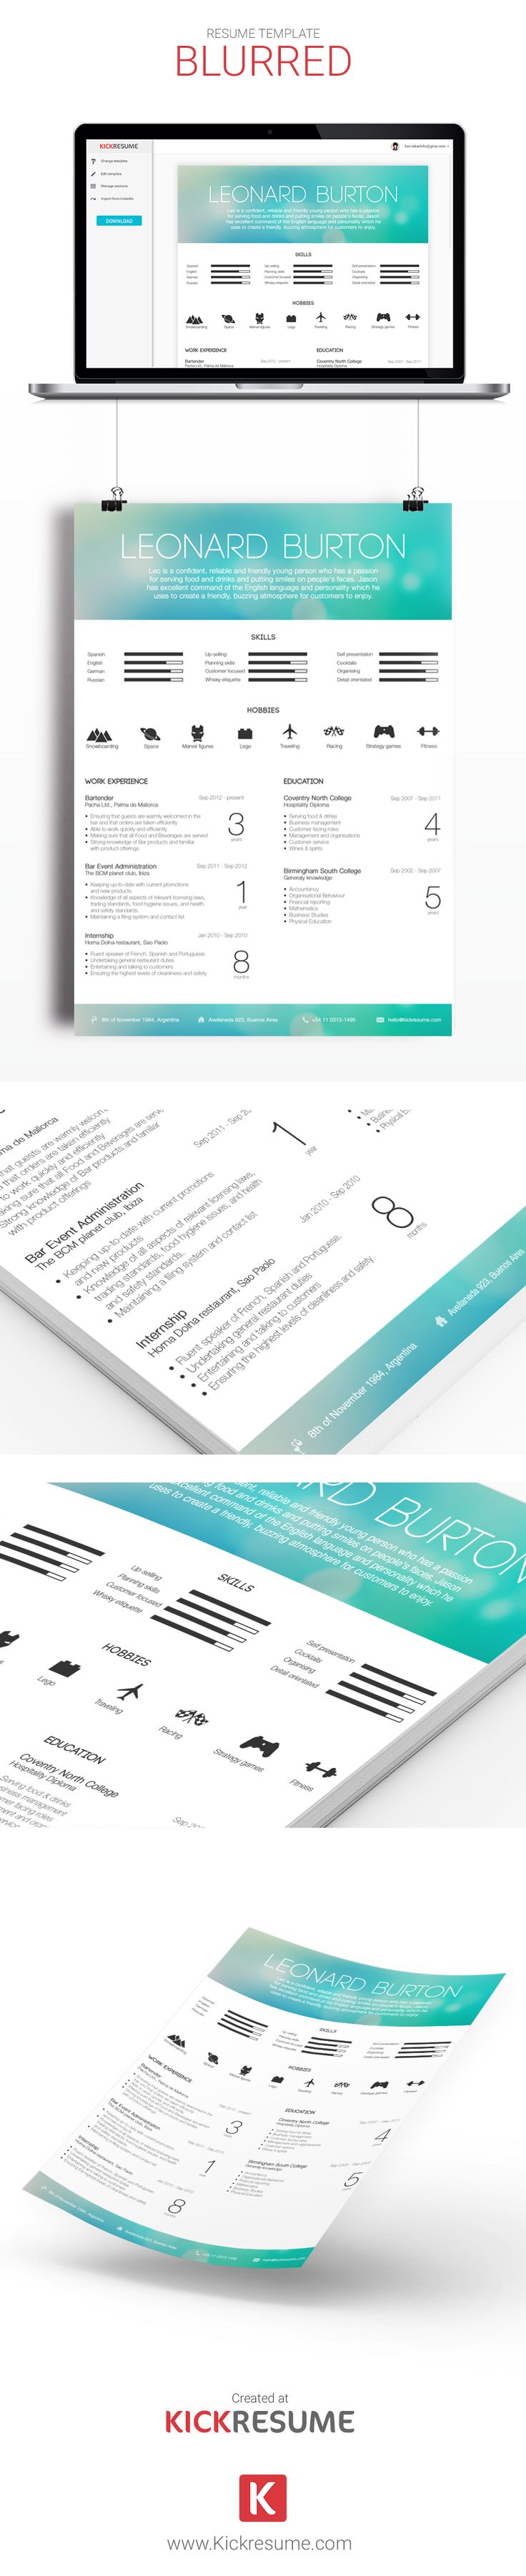 17 best images about kickresume templates gallery resume samples try world s most advanced resume builder resume sample resume template resume design creative resume resume online